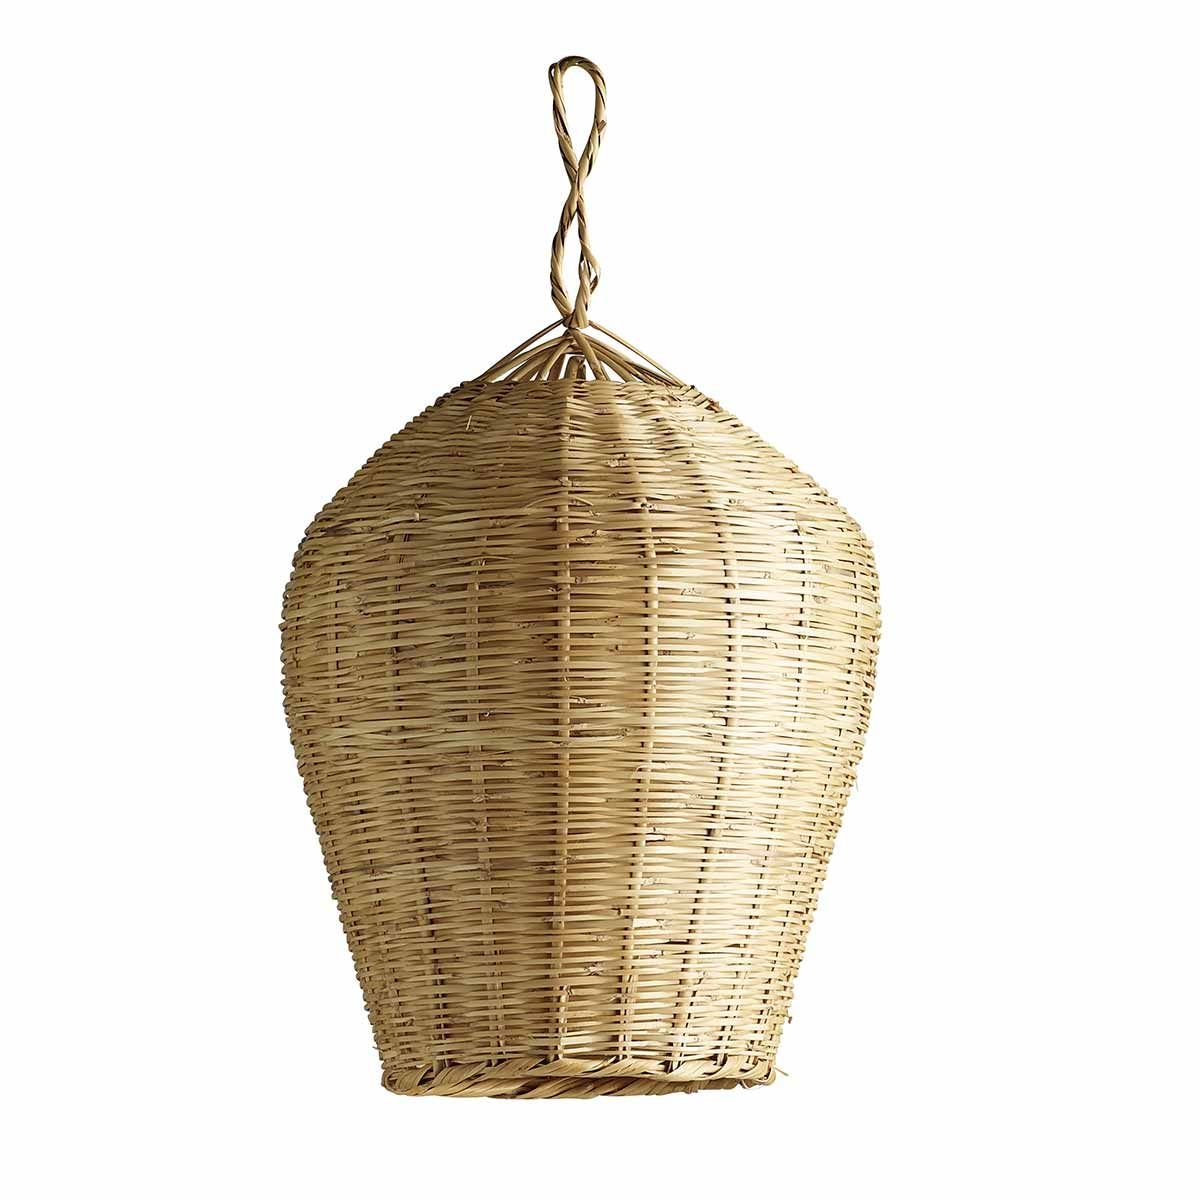 Suspension en feuille de palmier naturel Tine K Home